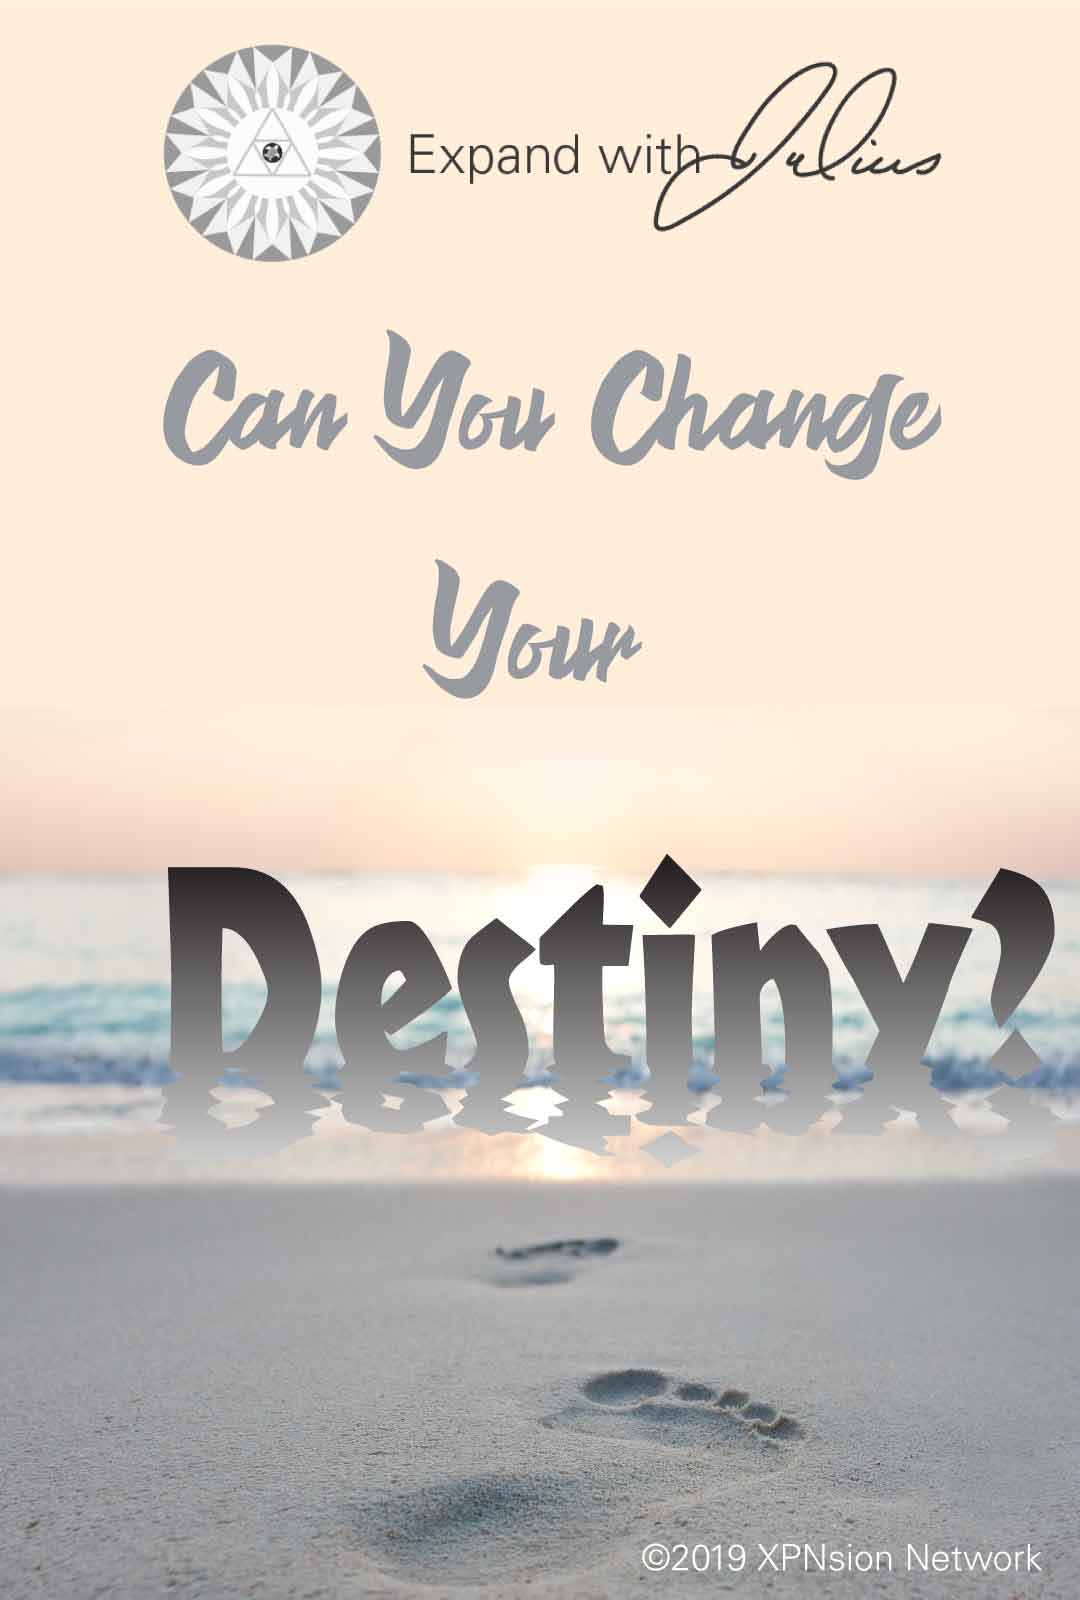 Poster Can you change your destiny | Expand with Julius and Xpnsion Network